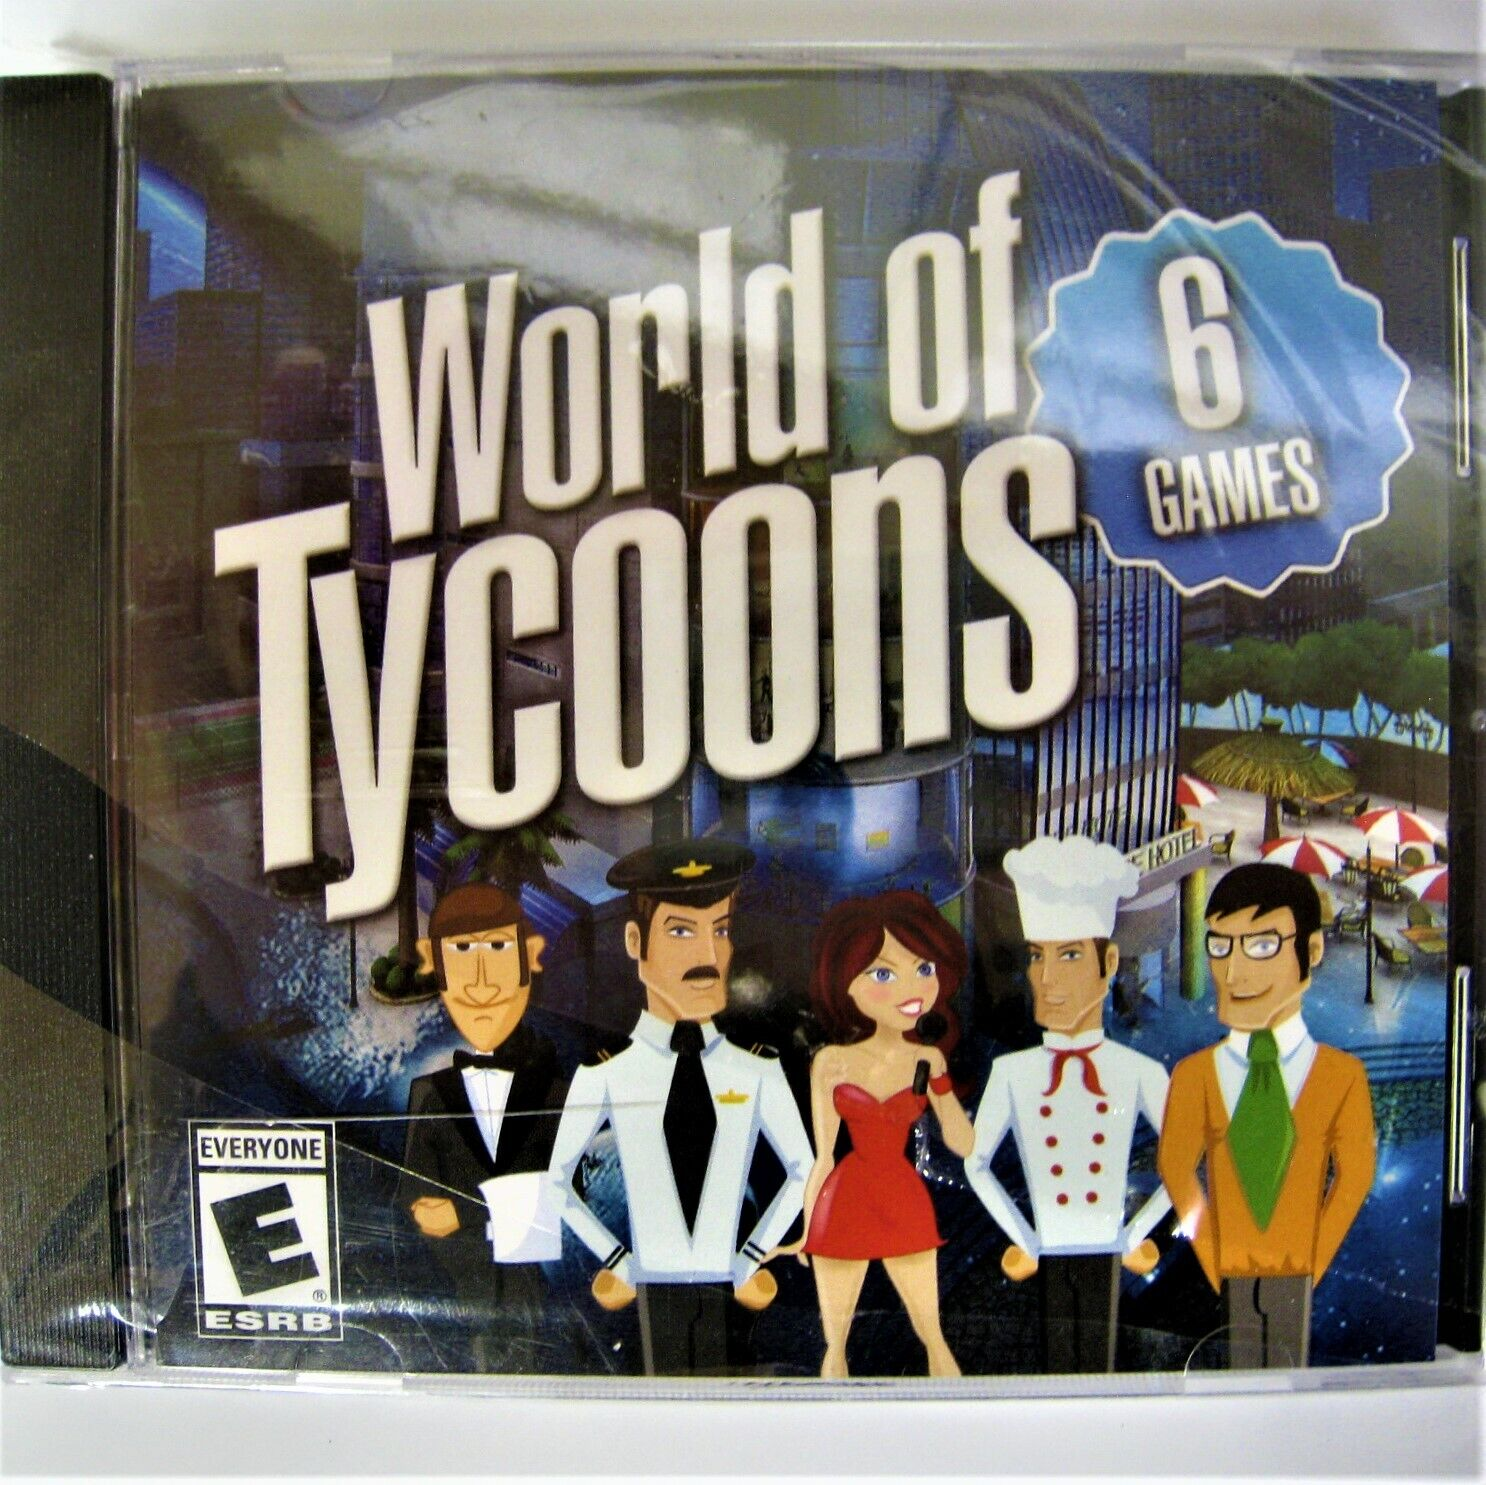 World of Tycoons, (PC Video Game) 6 Games UIG Entertainment RATED E